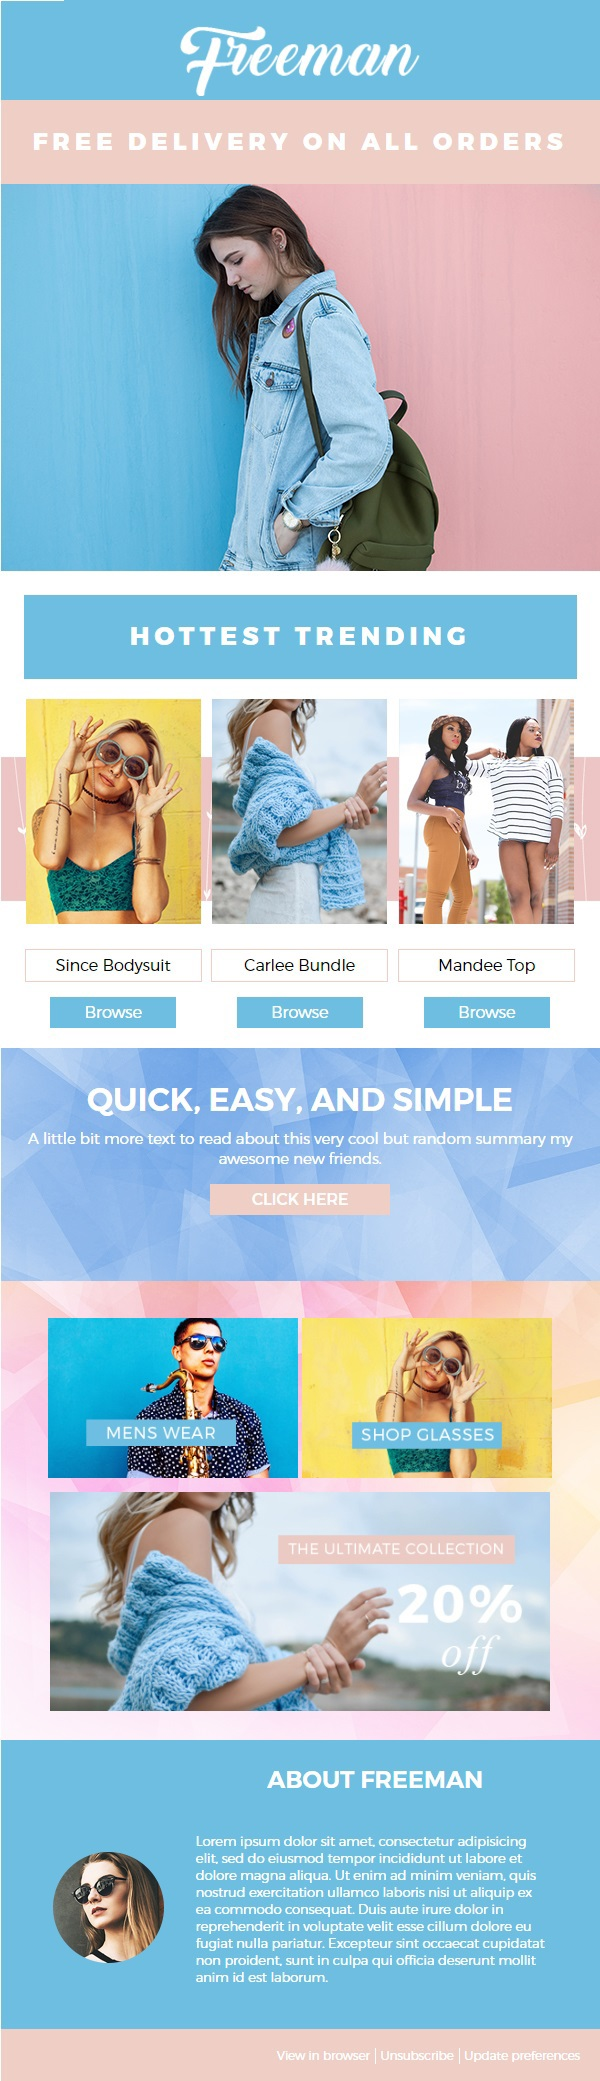 Freeman Fashion Mailchimp Email Newsletter Template On Student Show